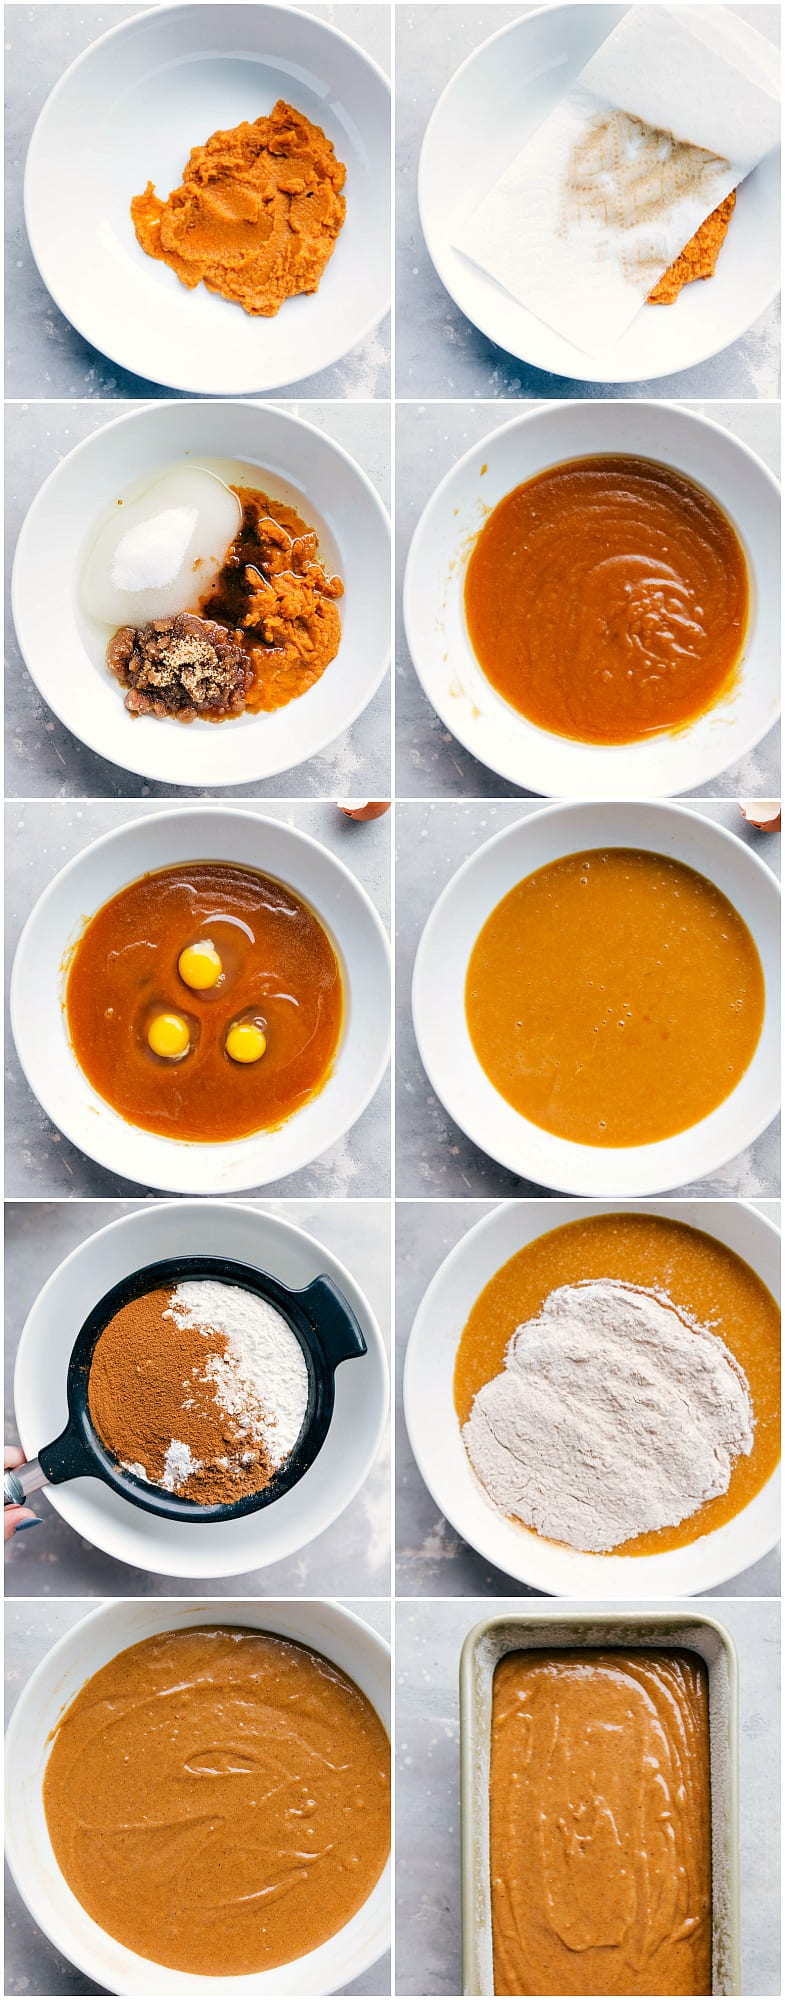 10 process photos of making pumpkin bread